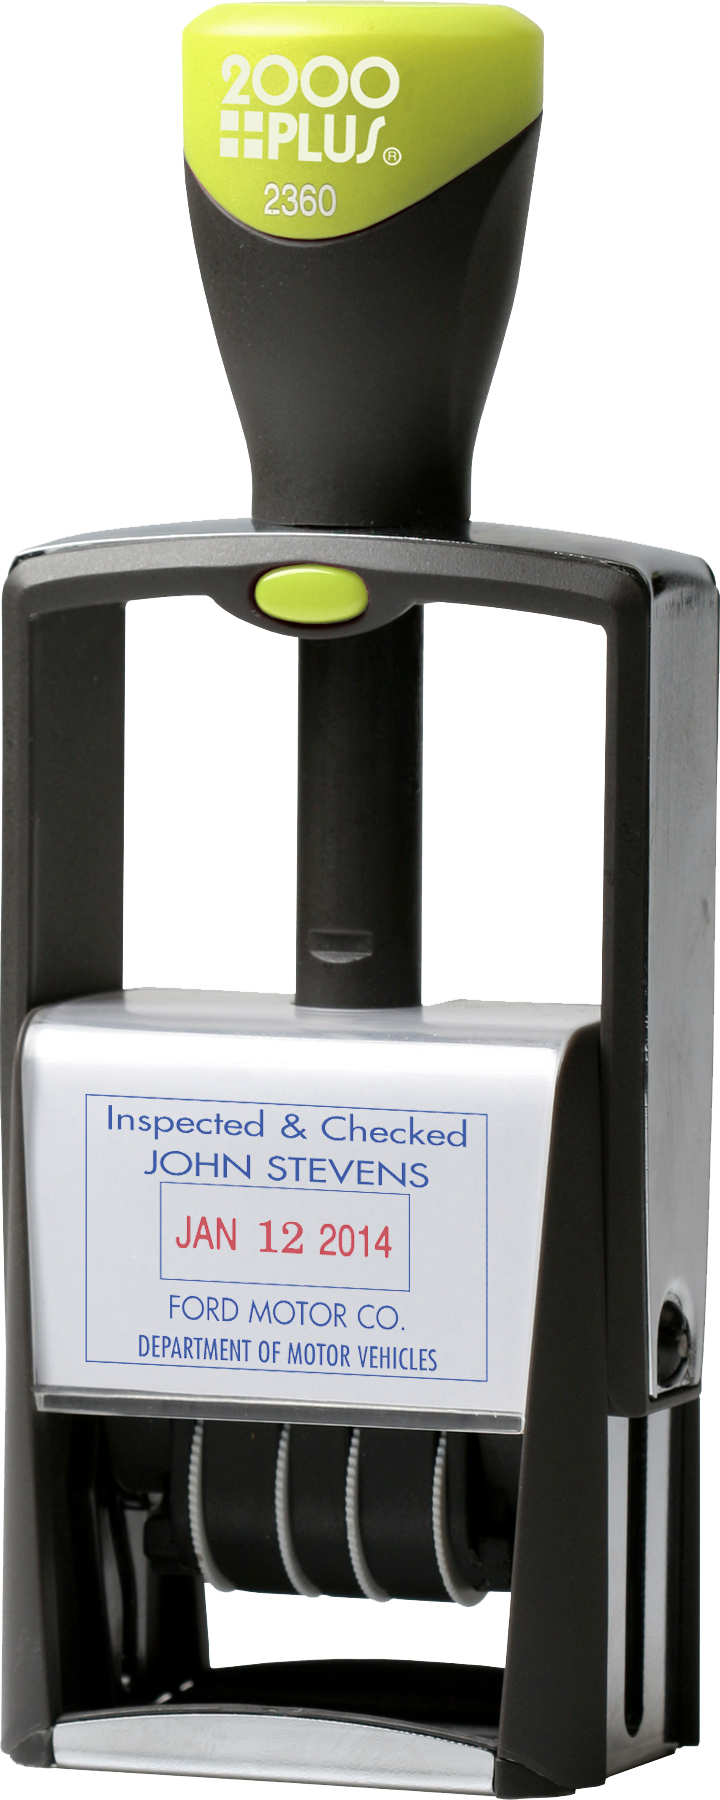 2000 Plus 2360 heavy duty dual-pad date stamp. Customizable at Quality Rubber Stamp!